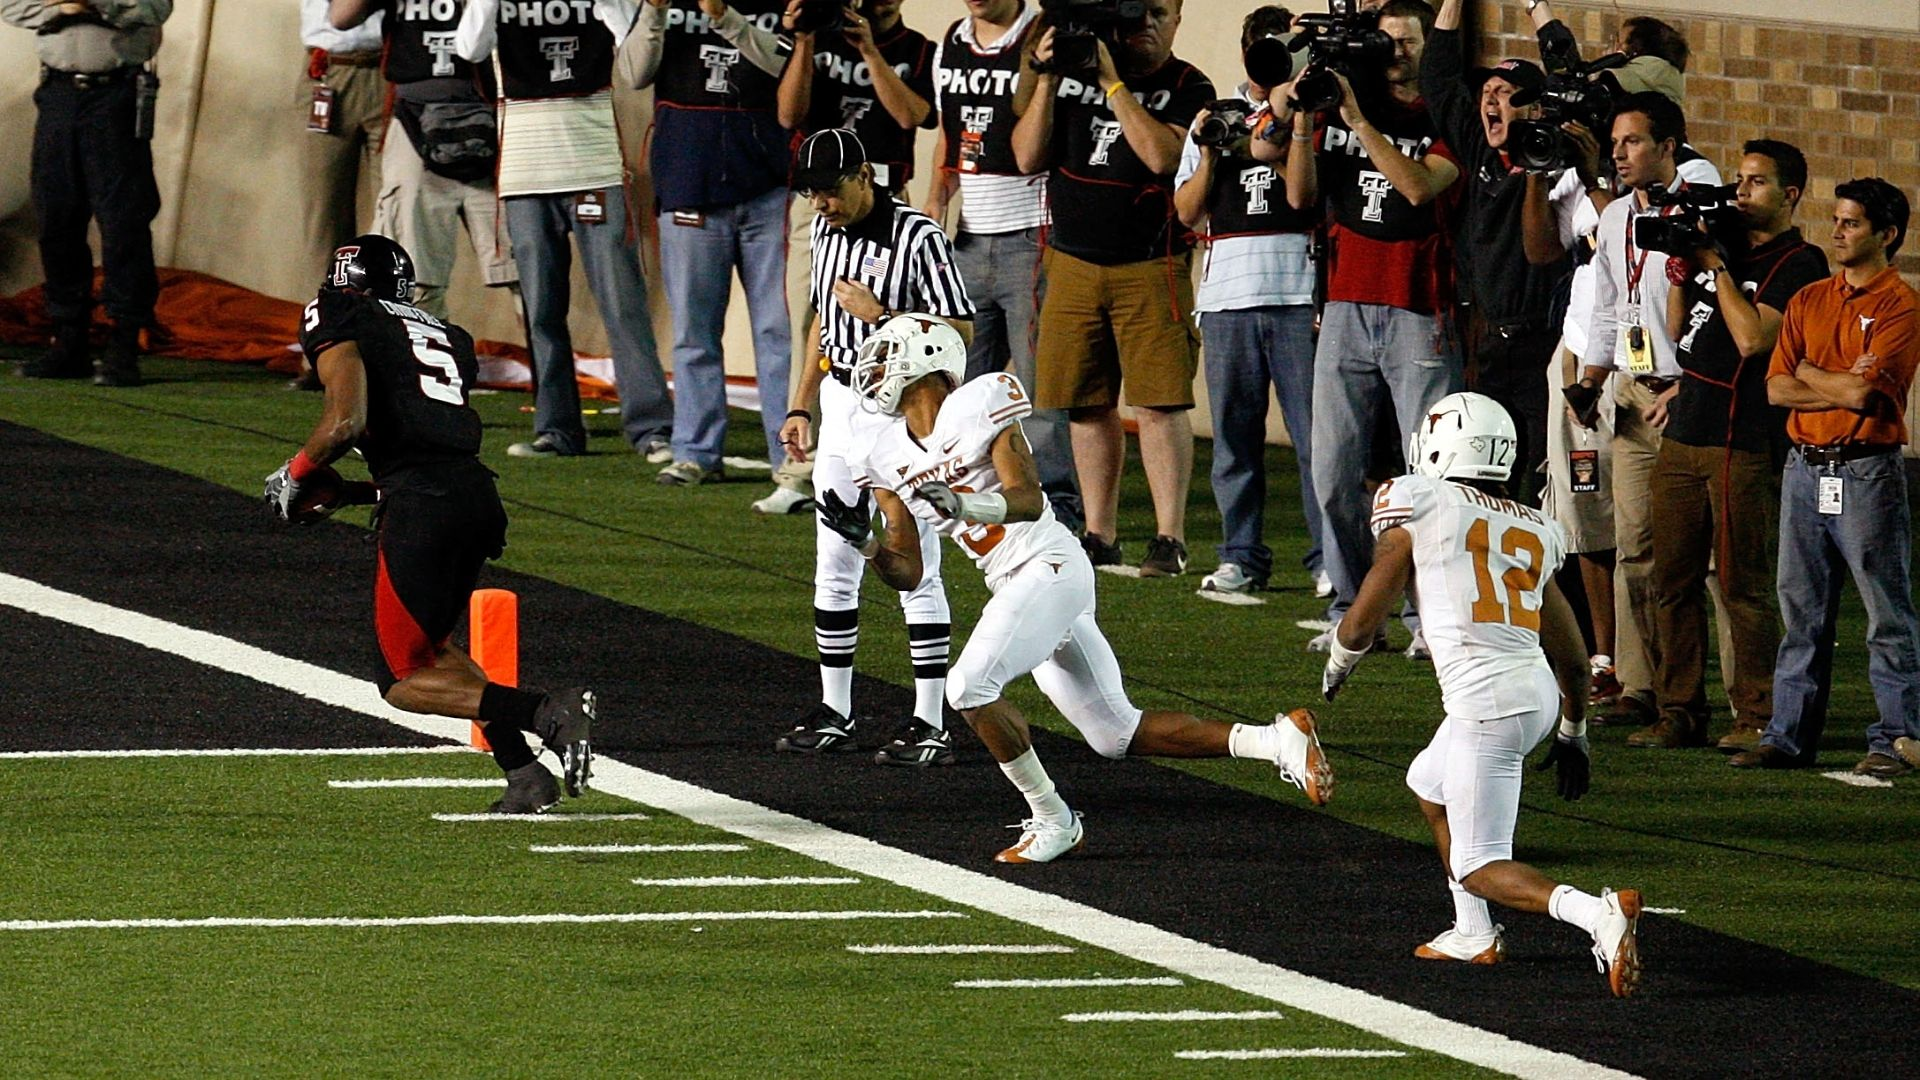 On This Date Crabtrees Clutch Catch Wins Game For Texas Tech